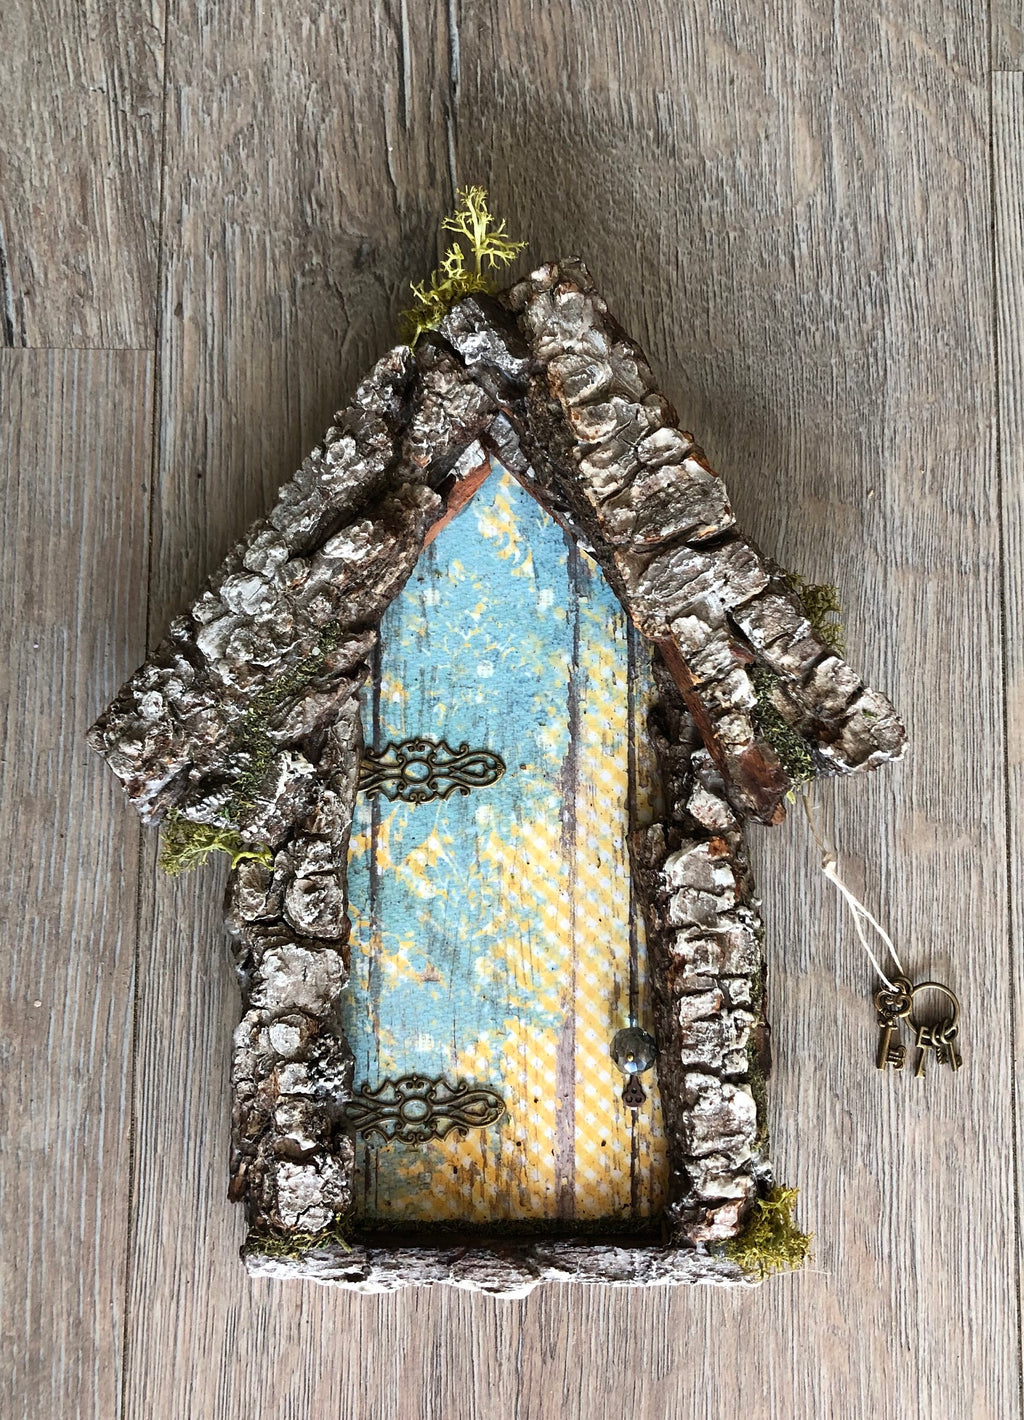 Fairy Door with Pine Bark Accent by Olive